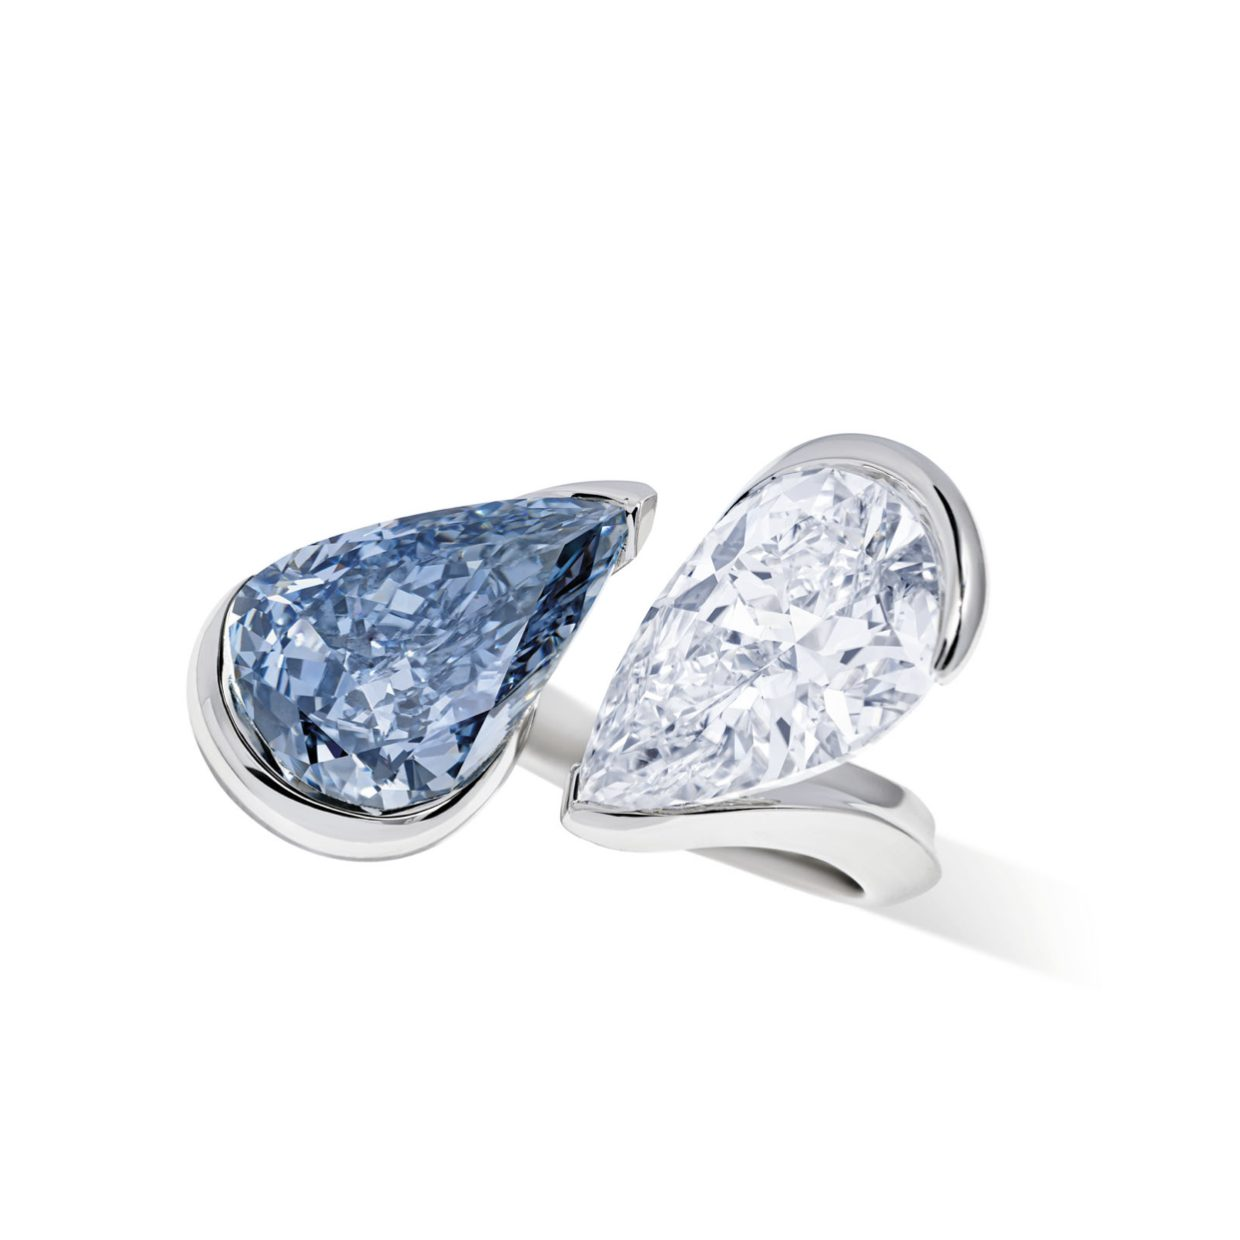 Christie's Geneva Magnificent Jewels Auction Will Offer Unique Fancy Color Diamonds At A Challenging Time